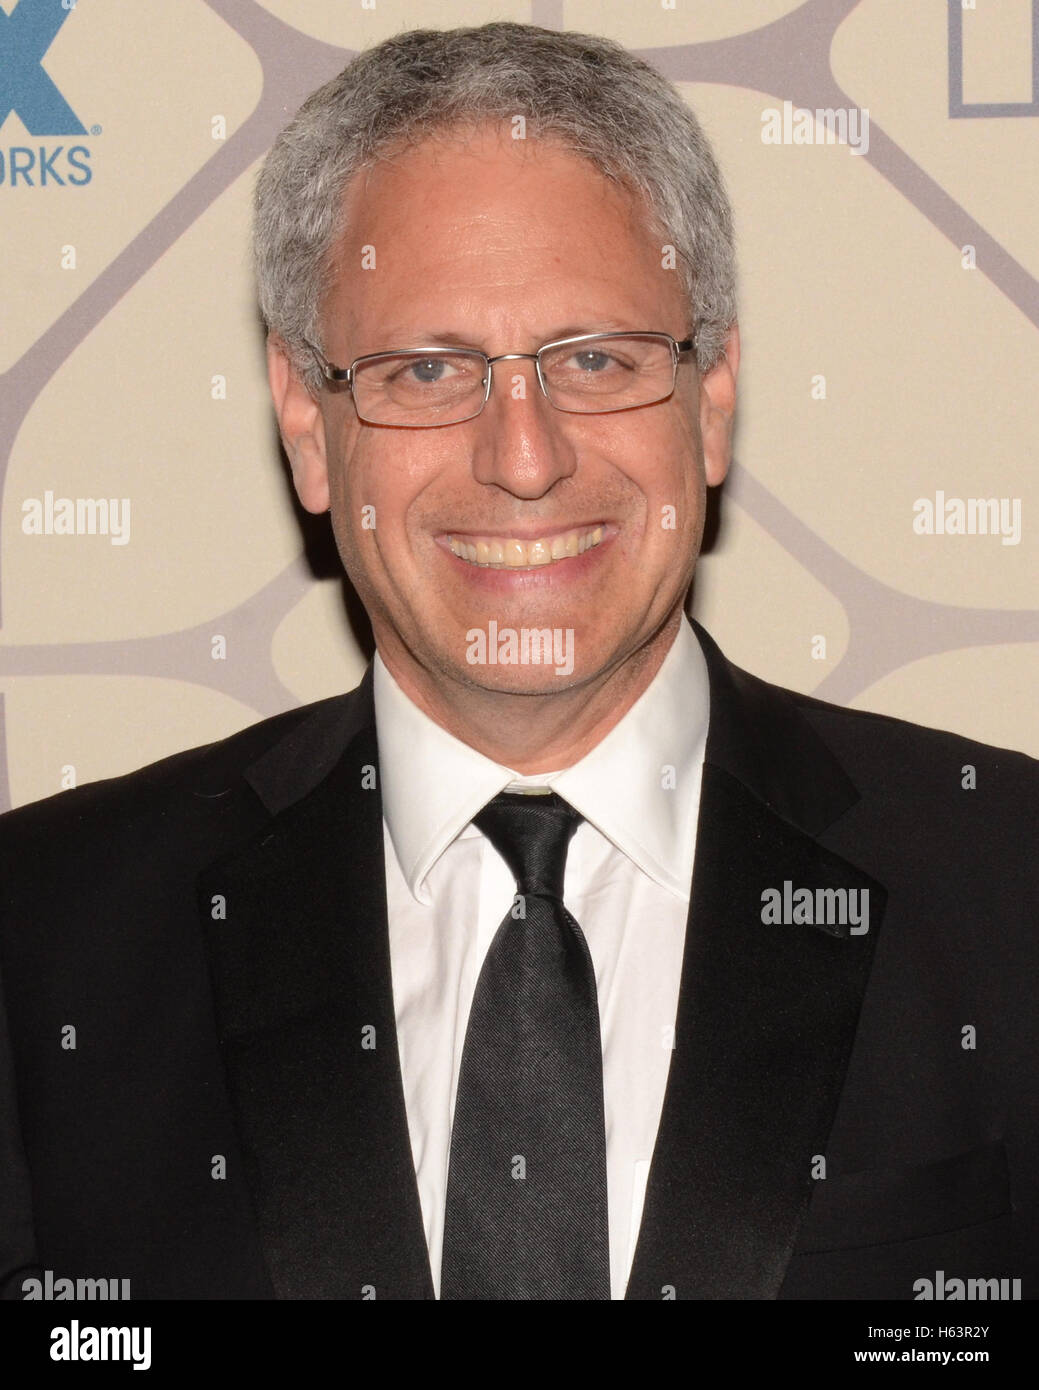 President and CEO of the National Geographic Society Gary Knell attends the 67th Primetime Emmy Awards Fox after - Stock Image